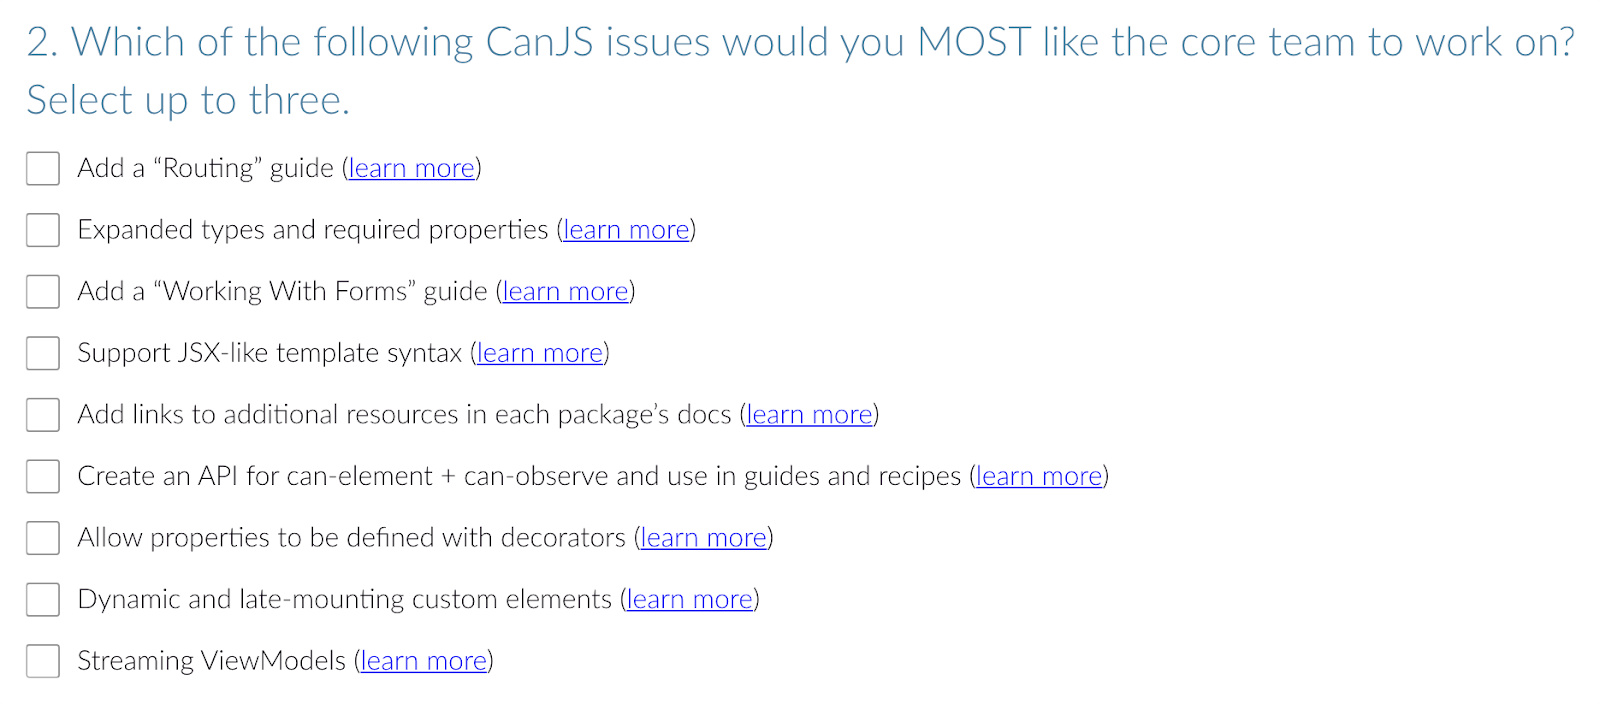 Questions from the CanJS section of the survey.